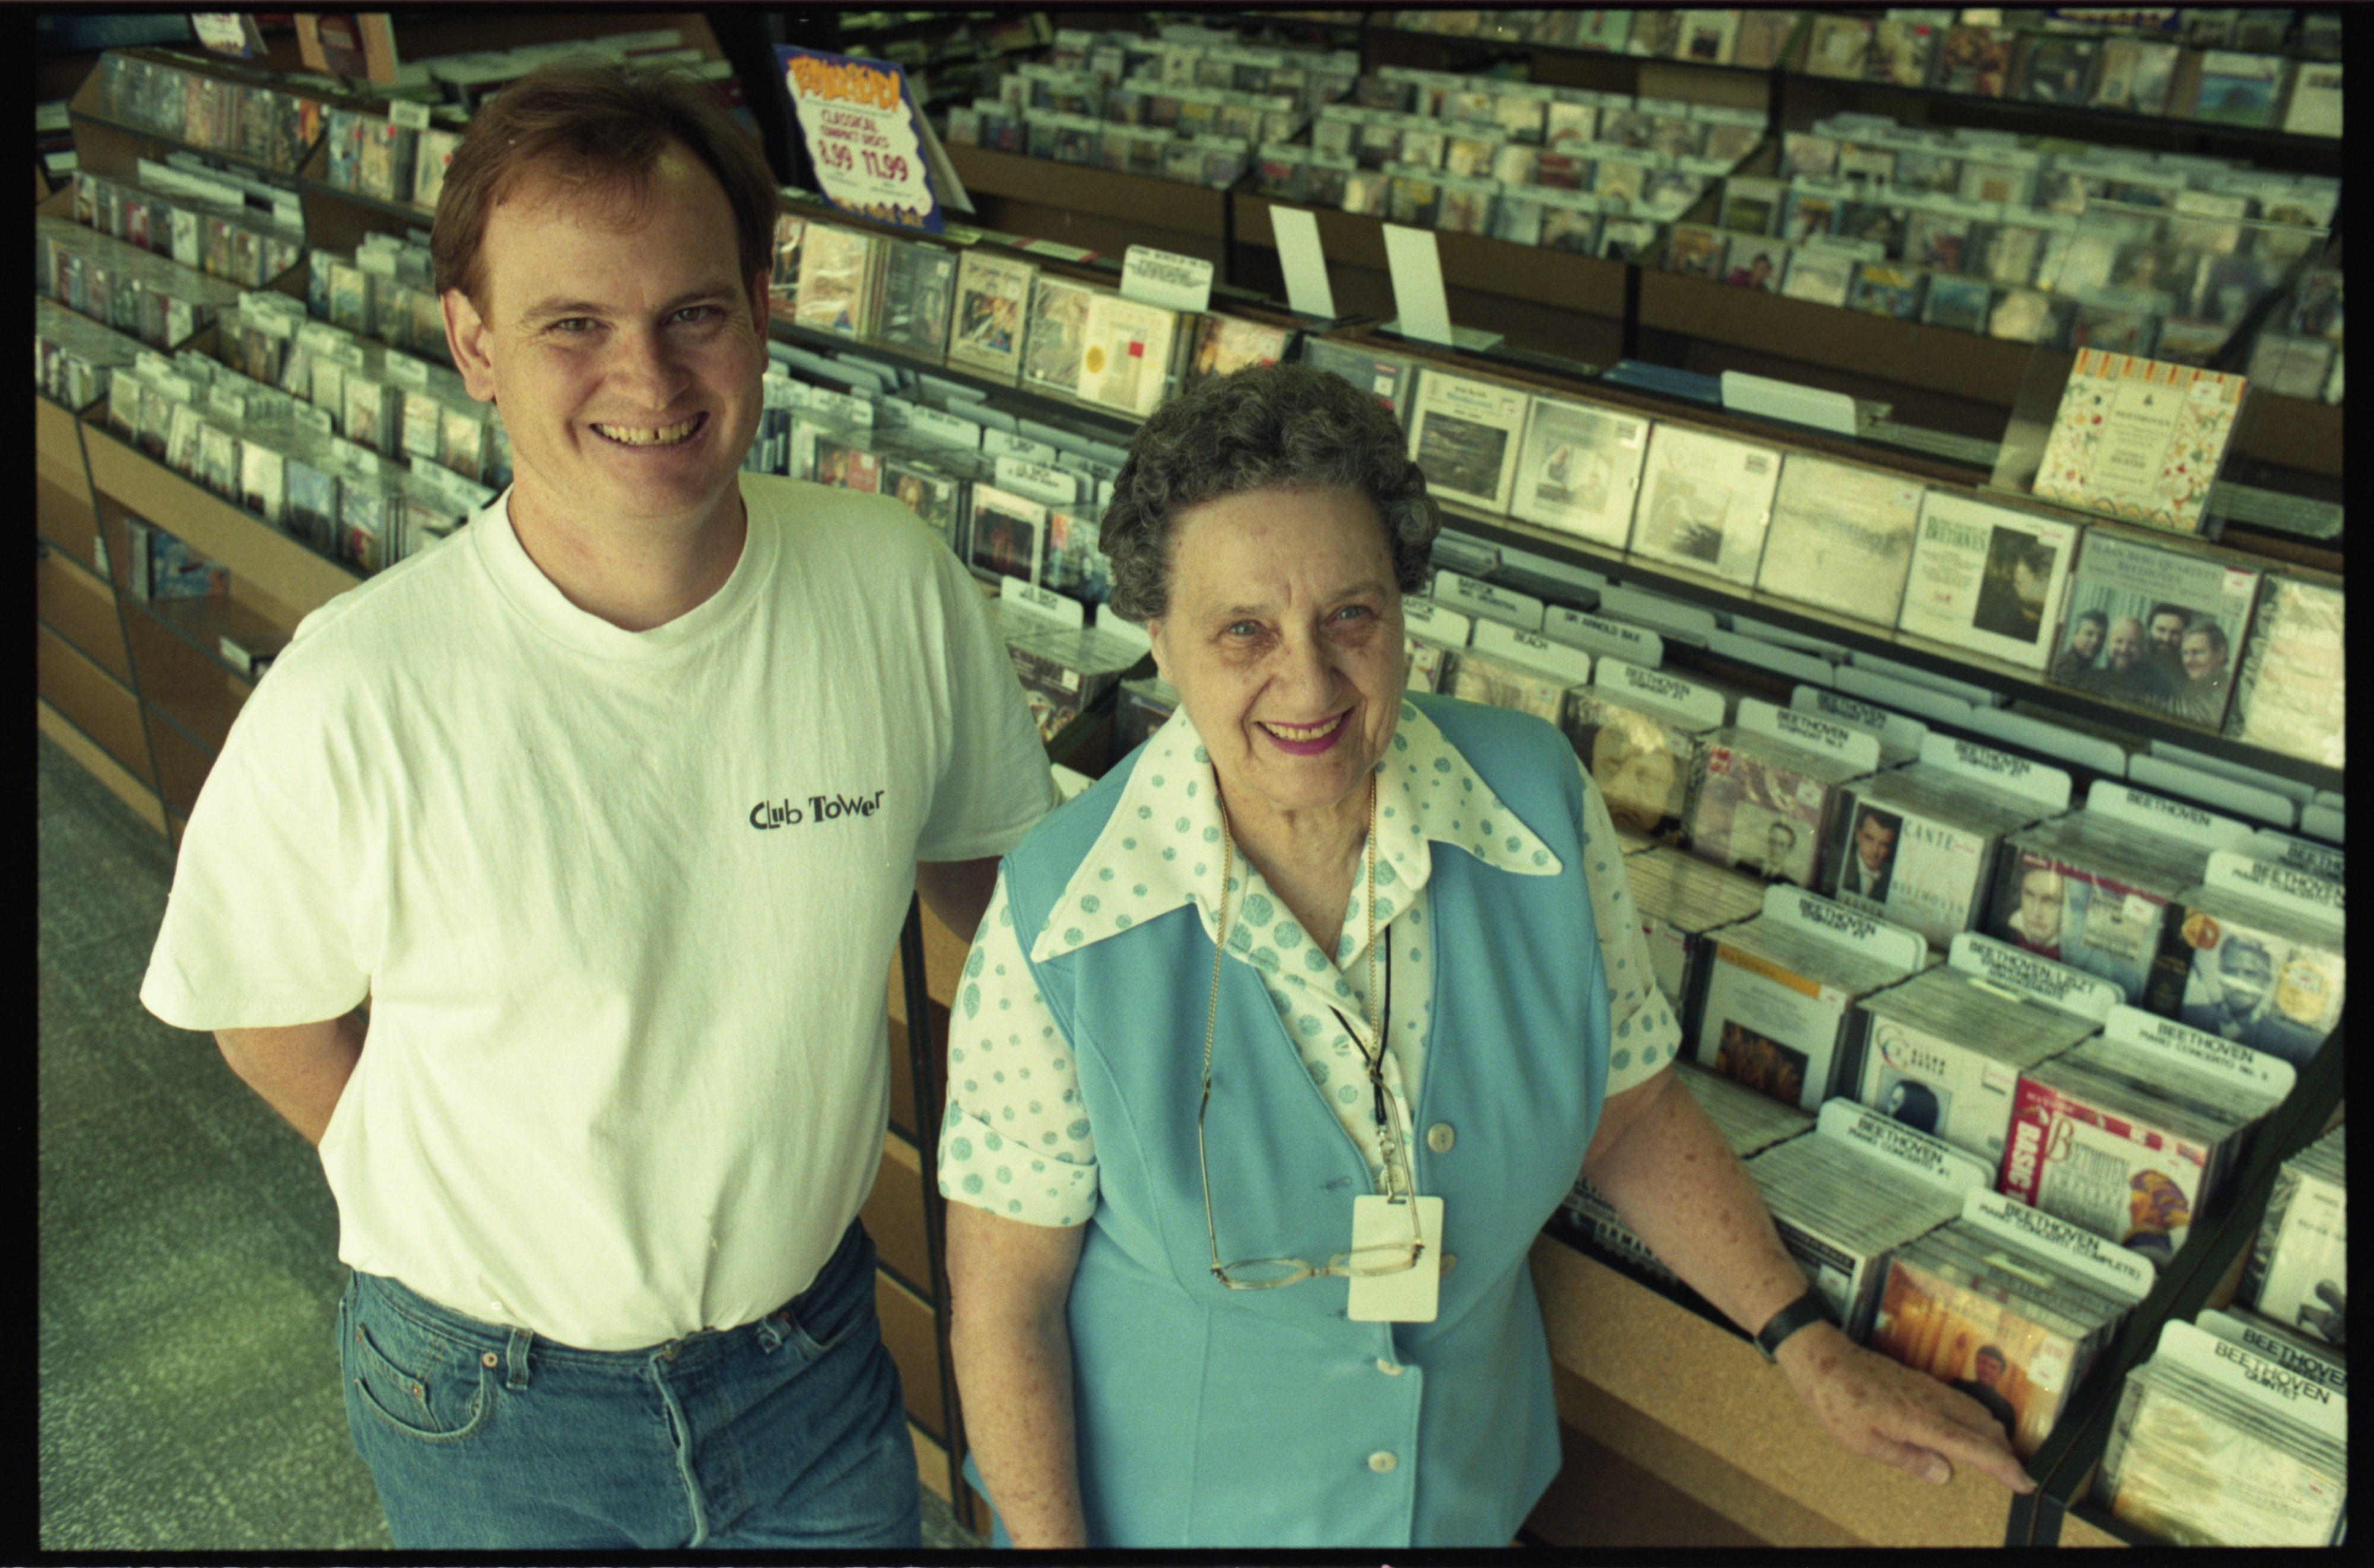 Tom Rule & Millie Wrightman - Tower Records, September 1994 image